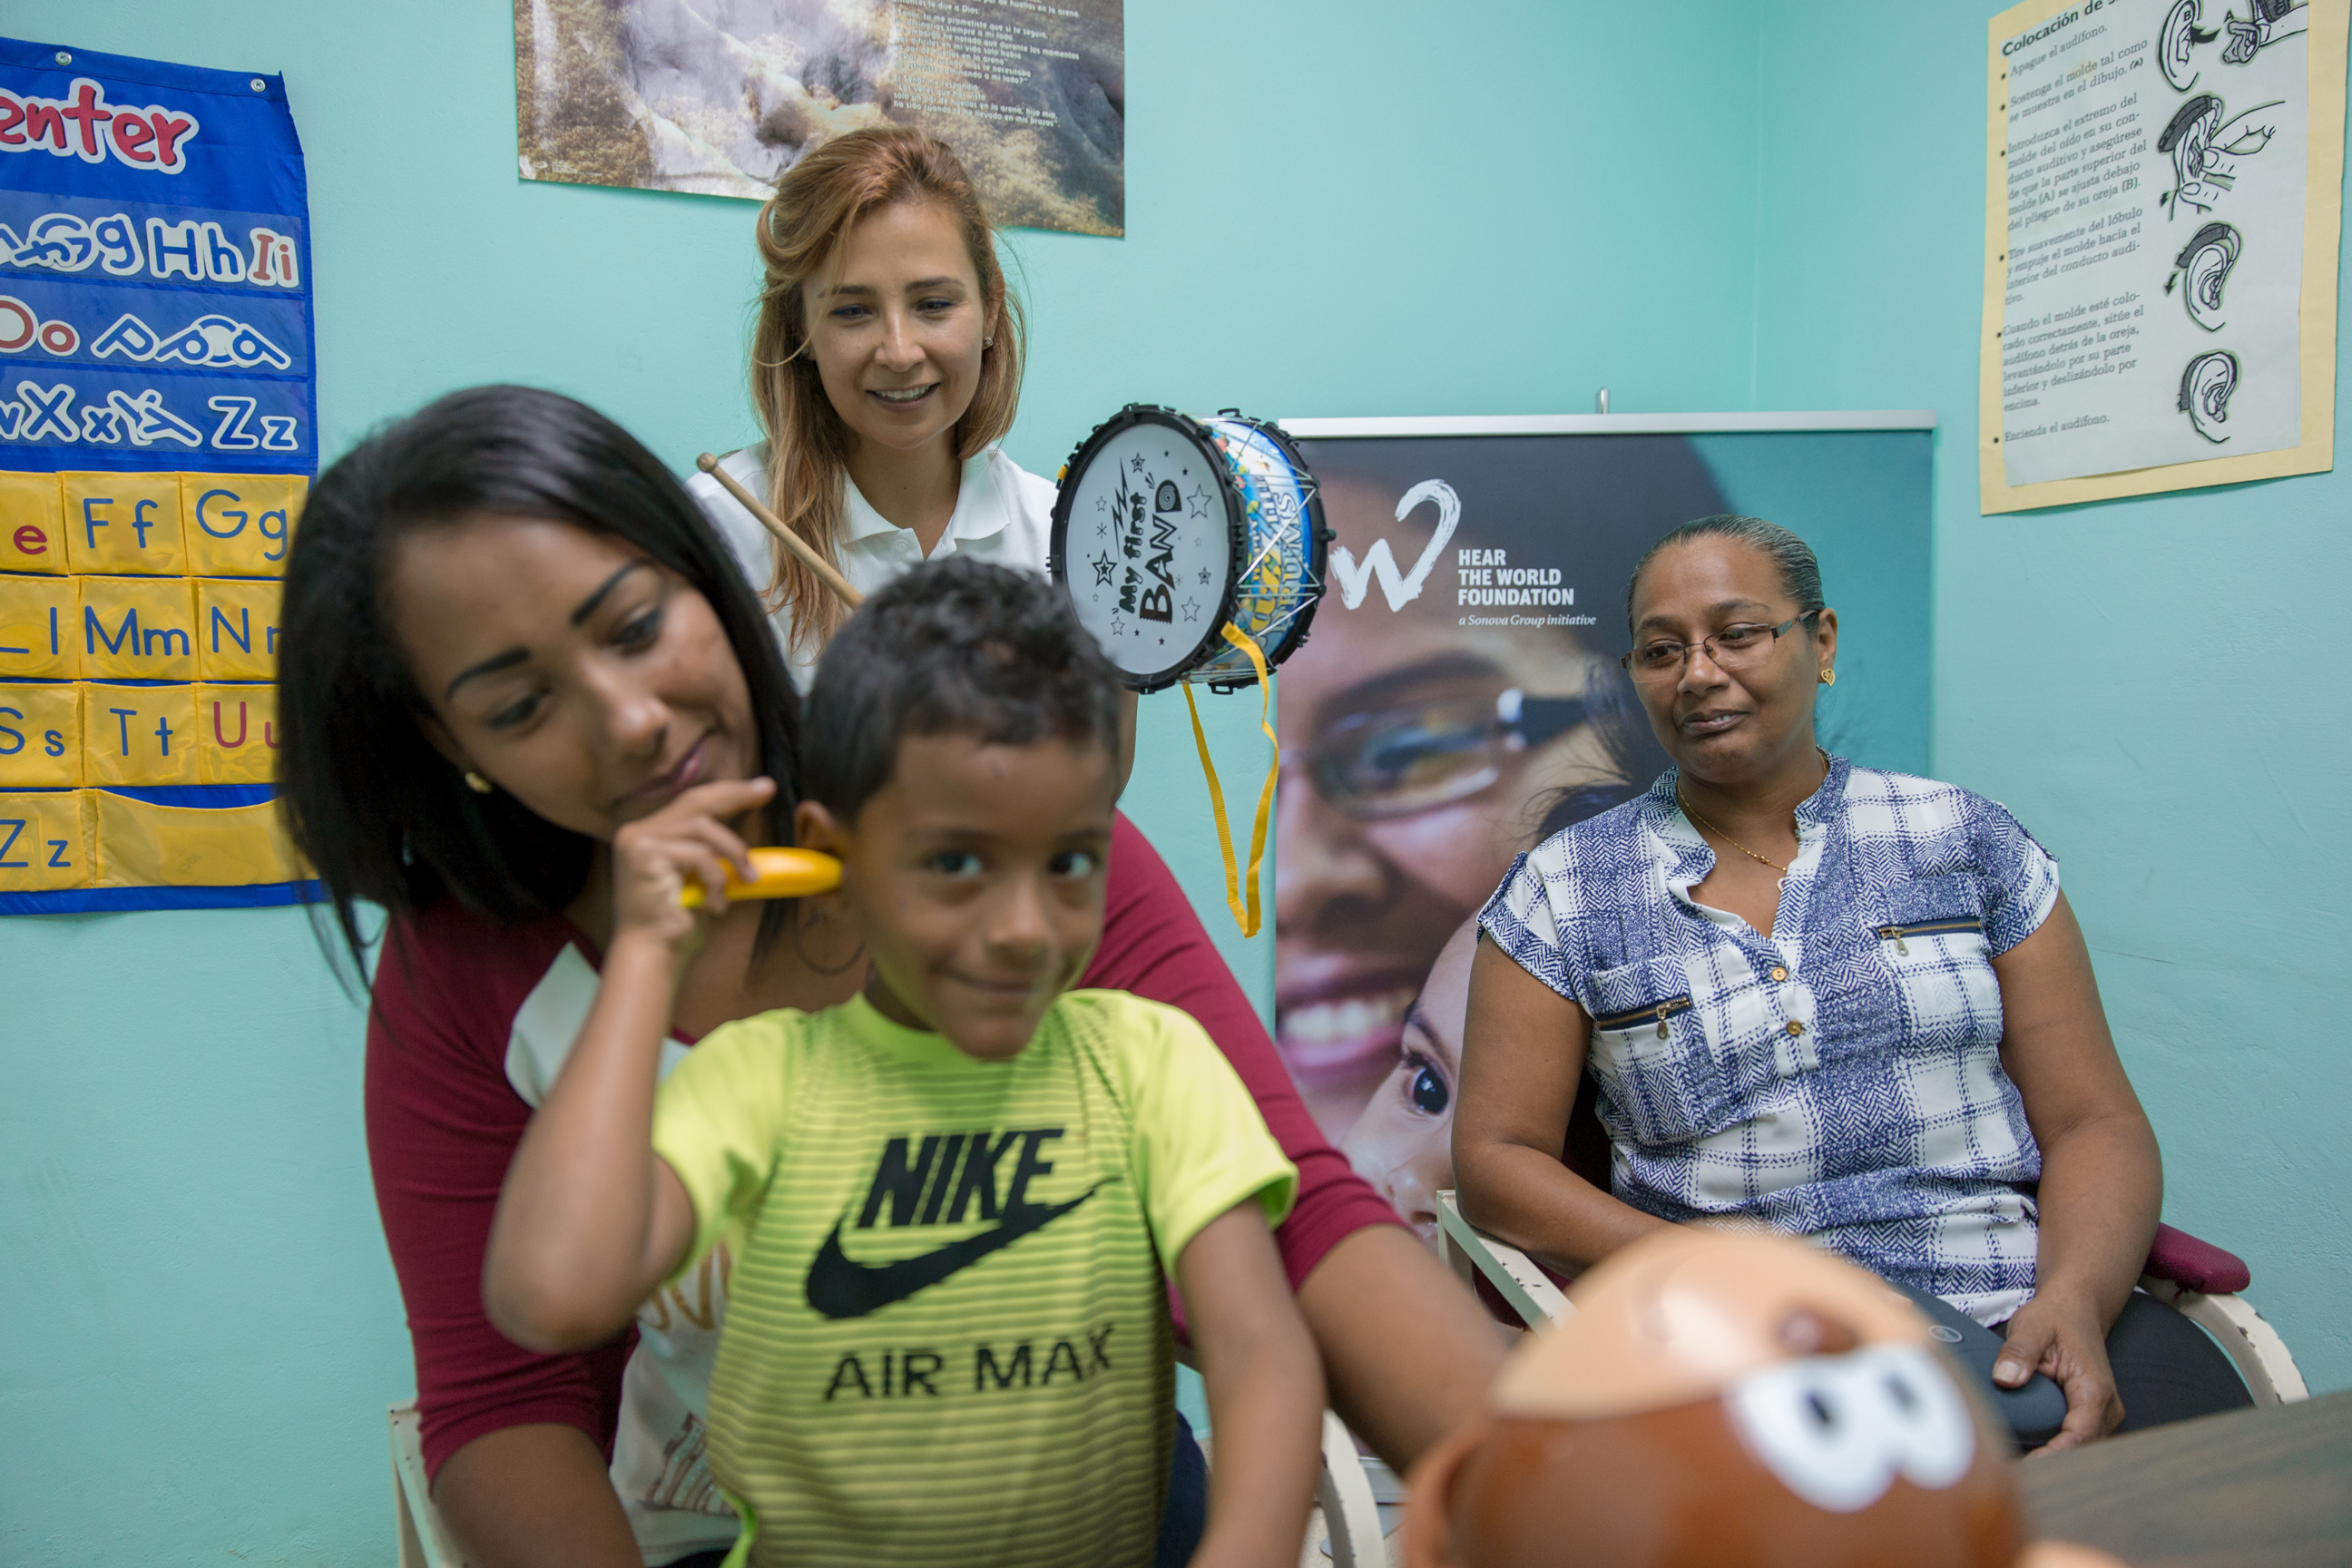 That is why for the first time, the Hear the World Foundation is donating chochlear implants (CI) to three children in Panama, in collaboration with the ...